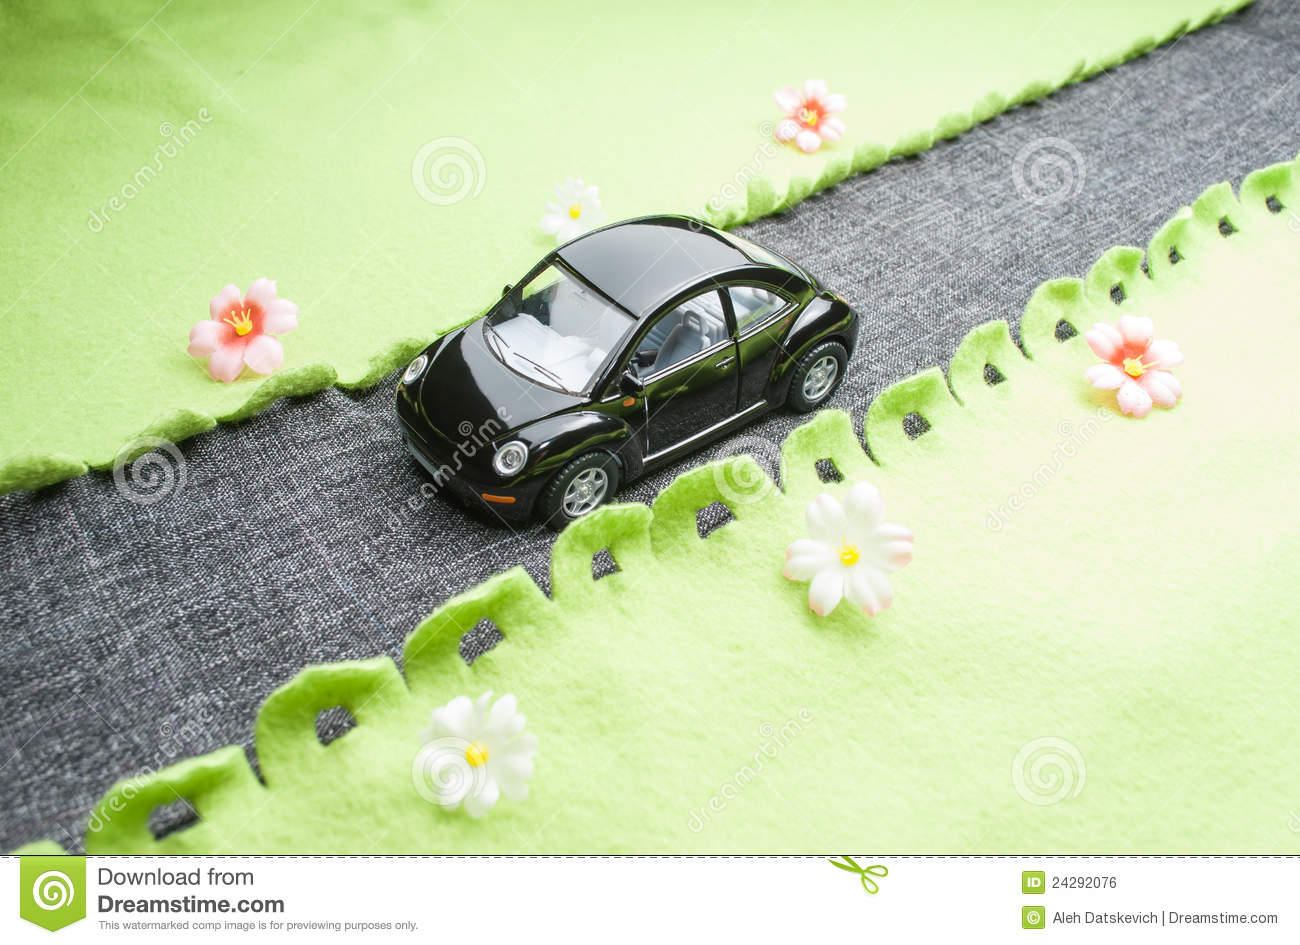 Fabric Roads For Toy Cars : Toy car on the road royalty free stock image